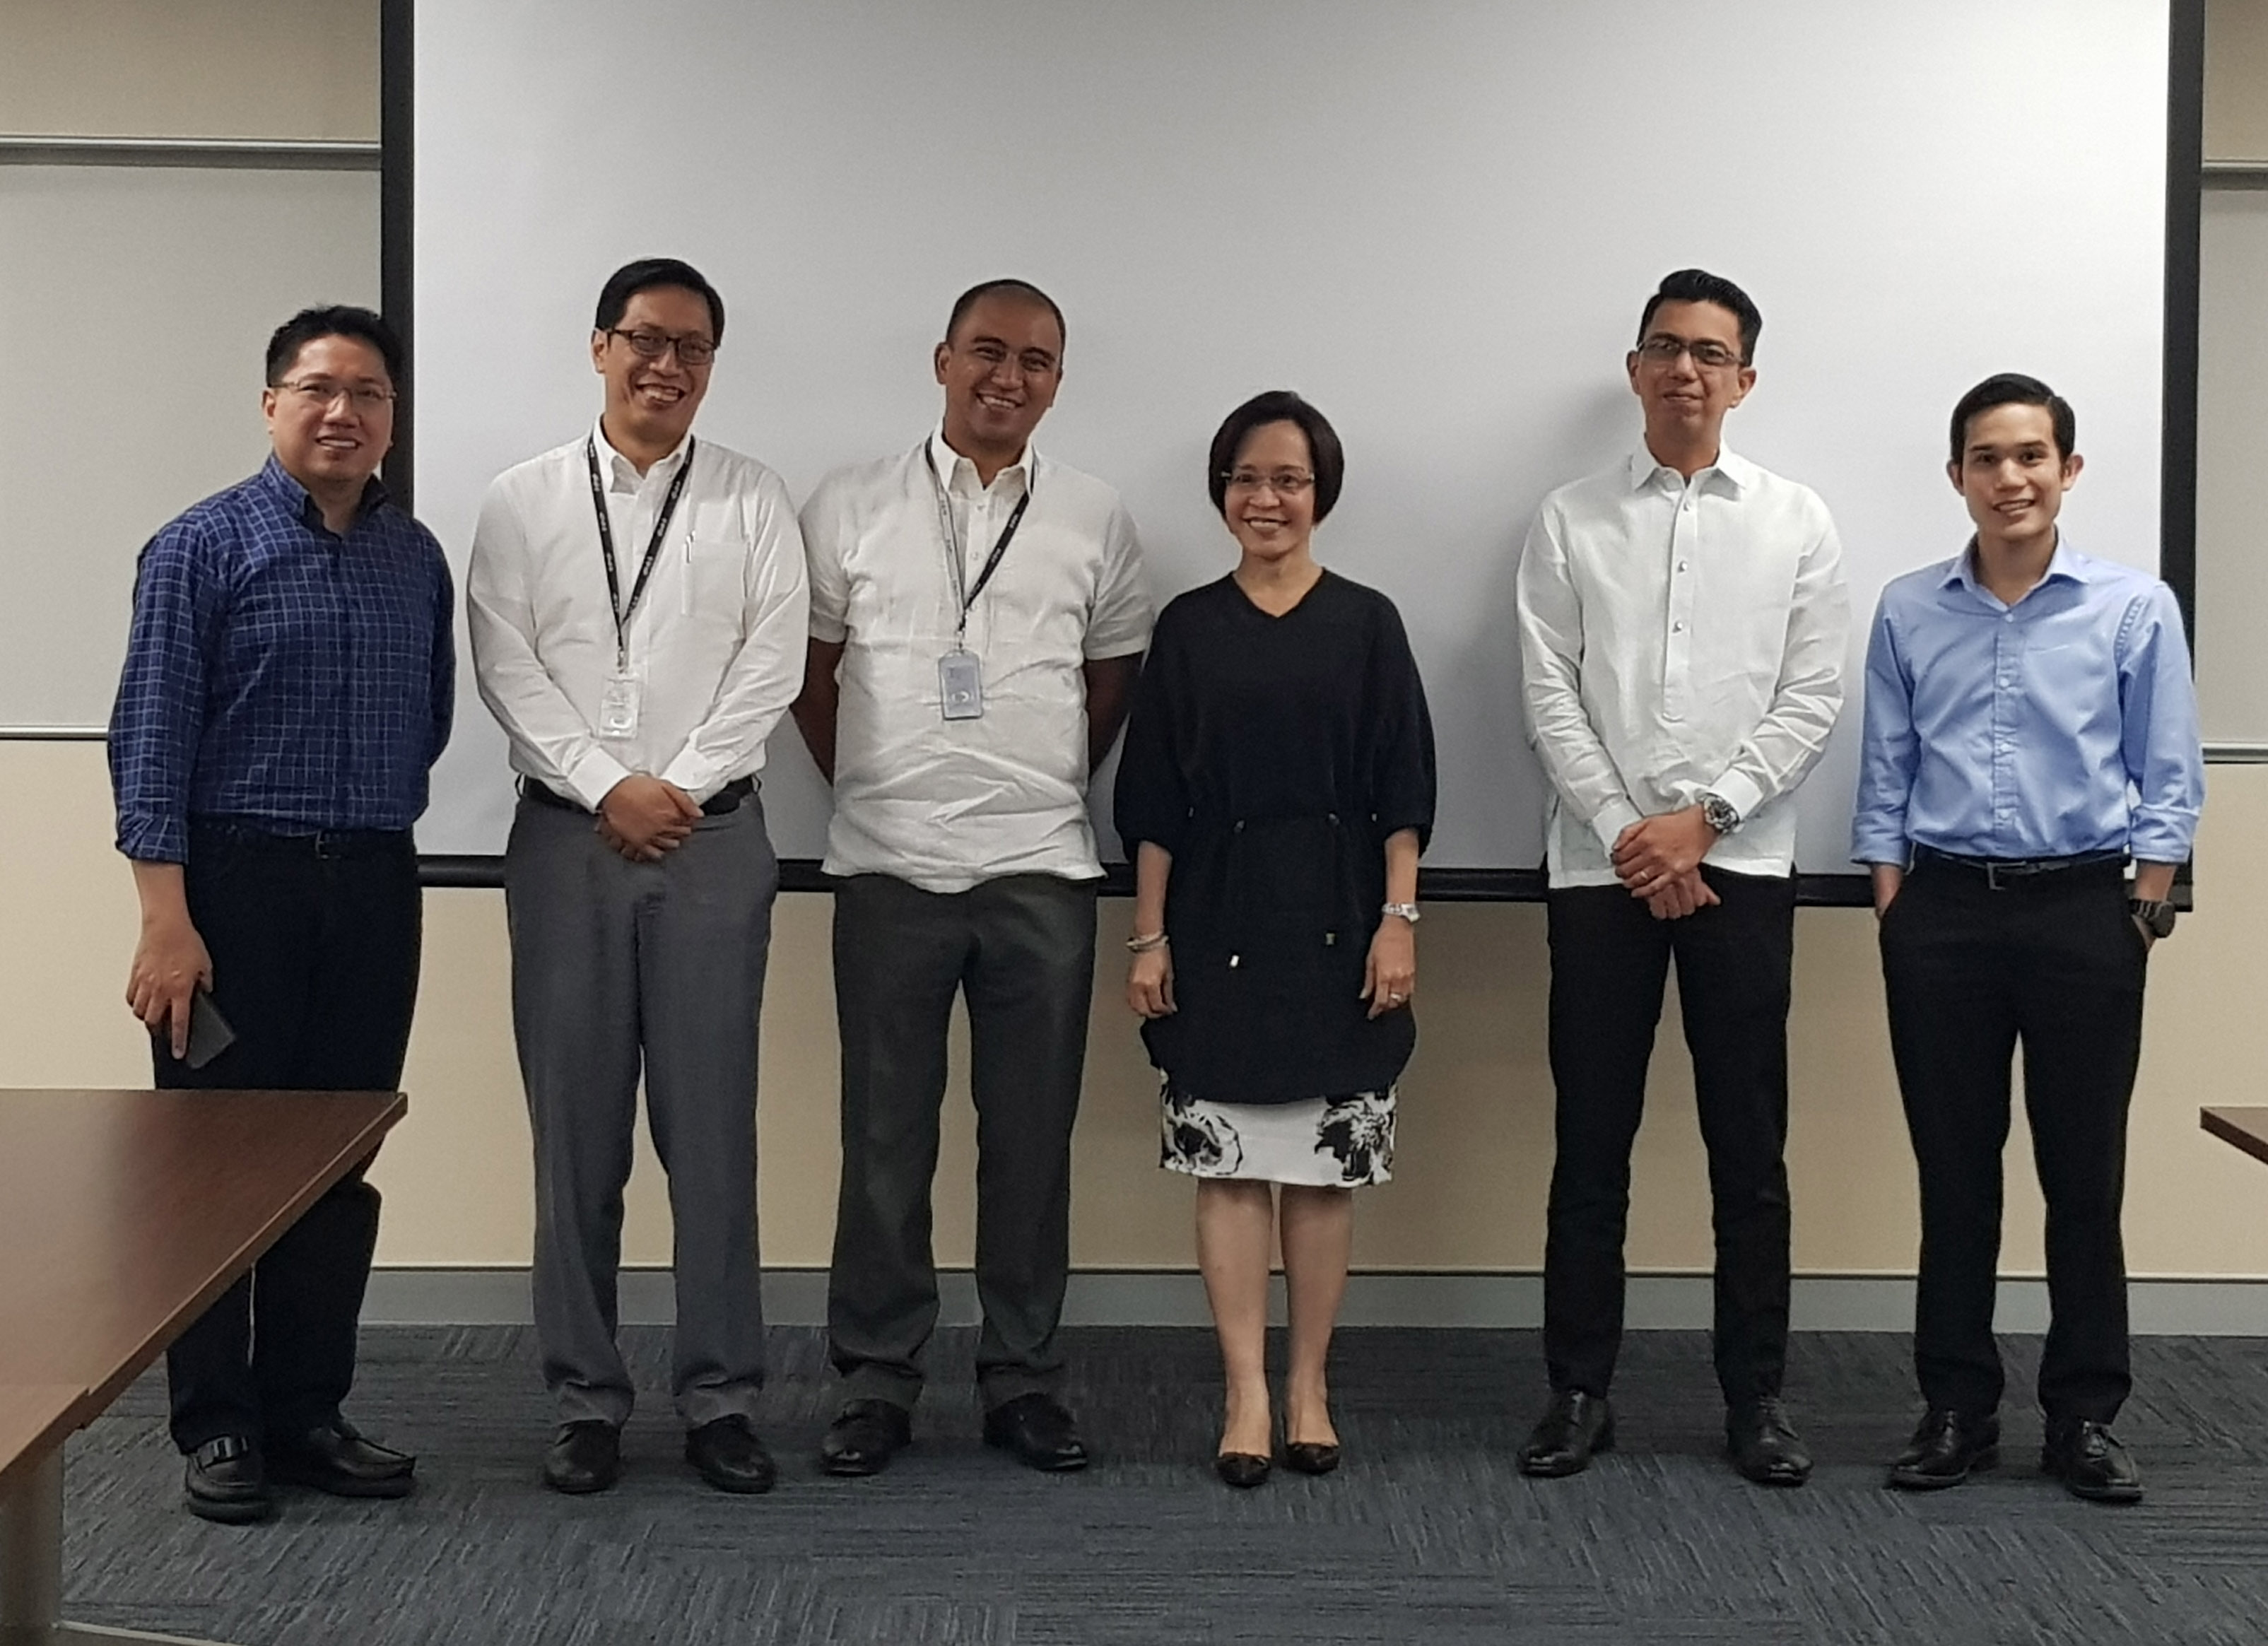 Dan Lopez Layug, CFA (rightmost) with the other members of the screening committee for Business Management and HR Focus